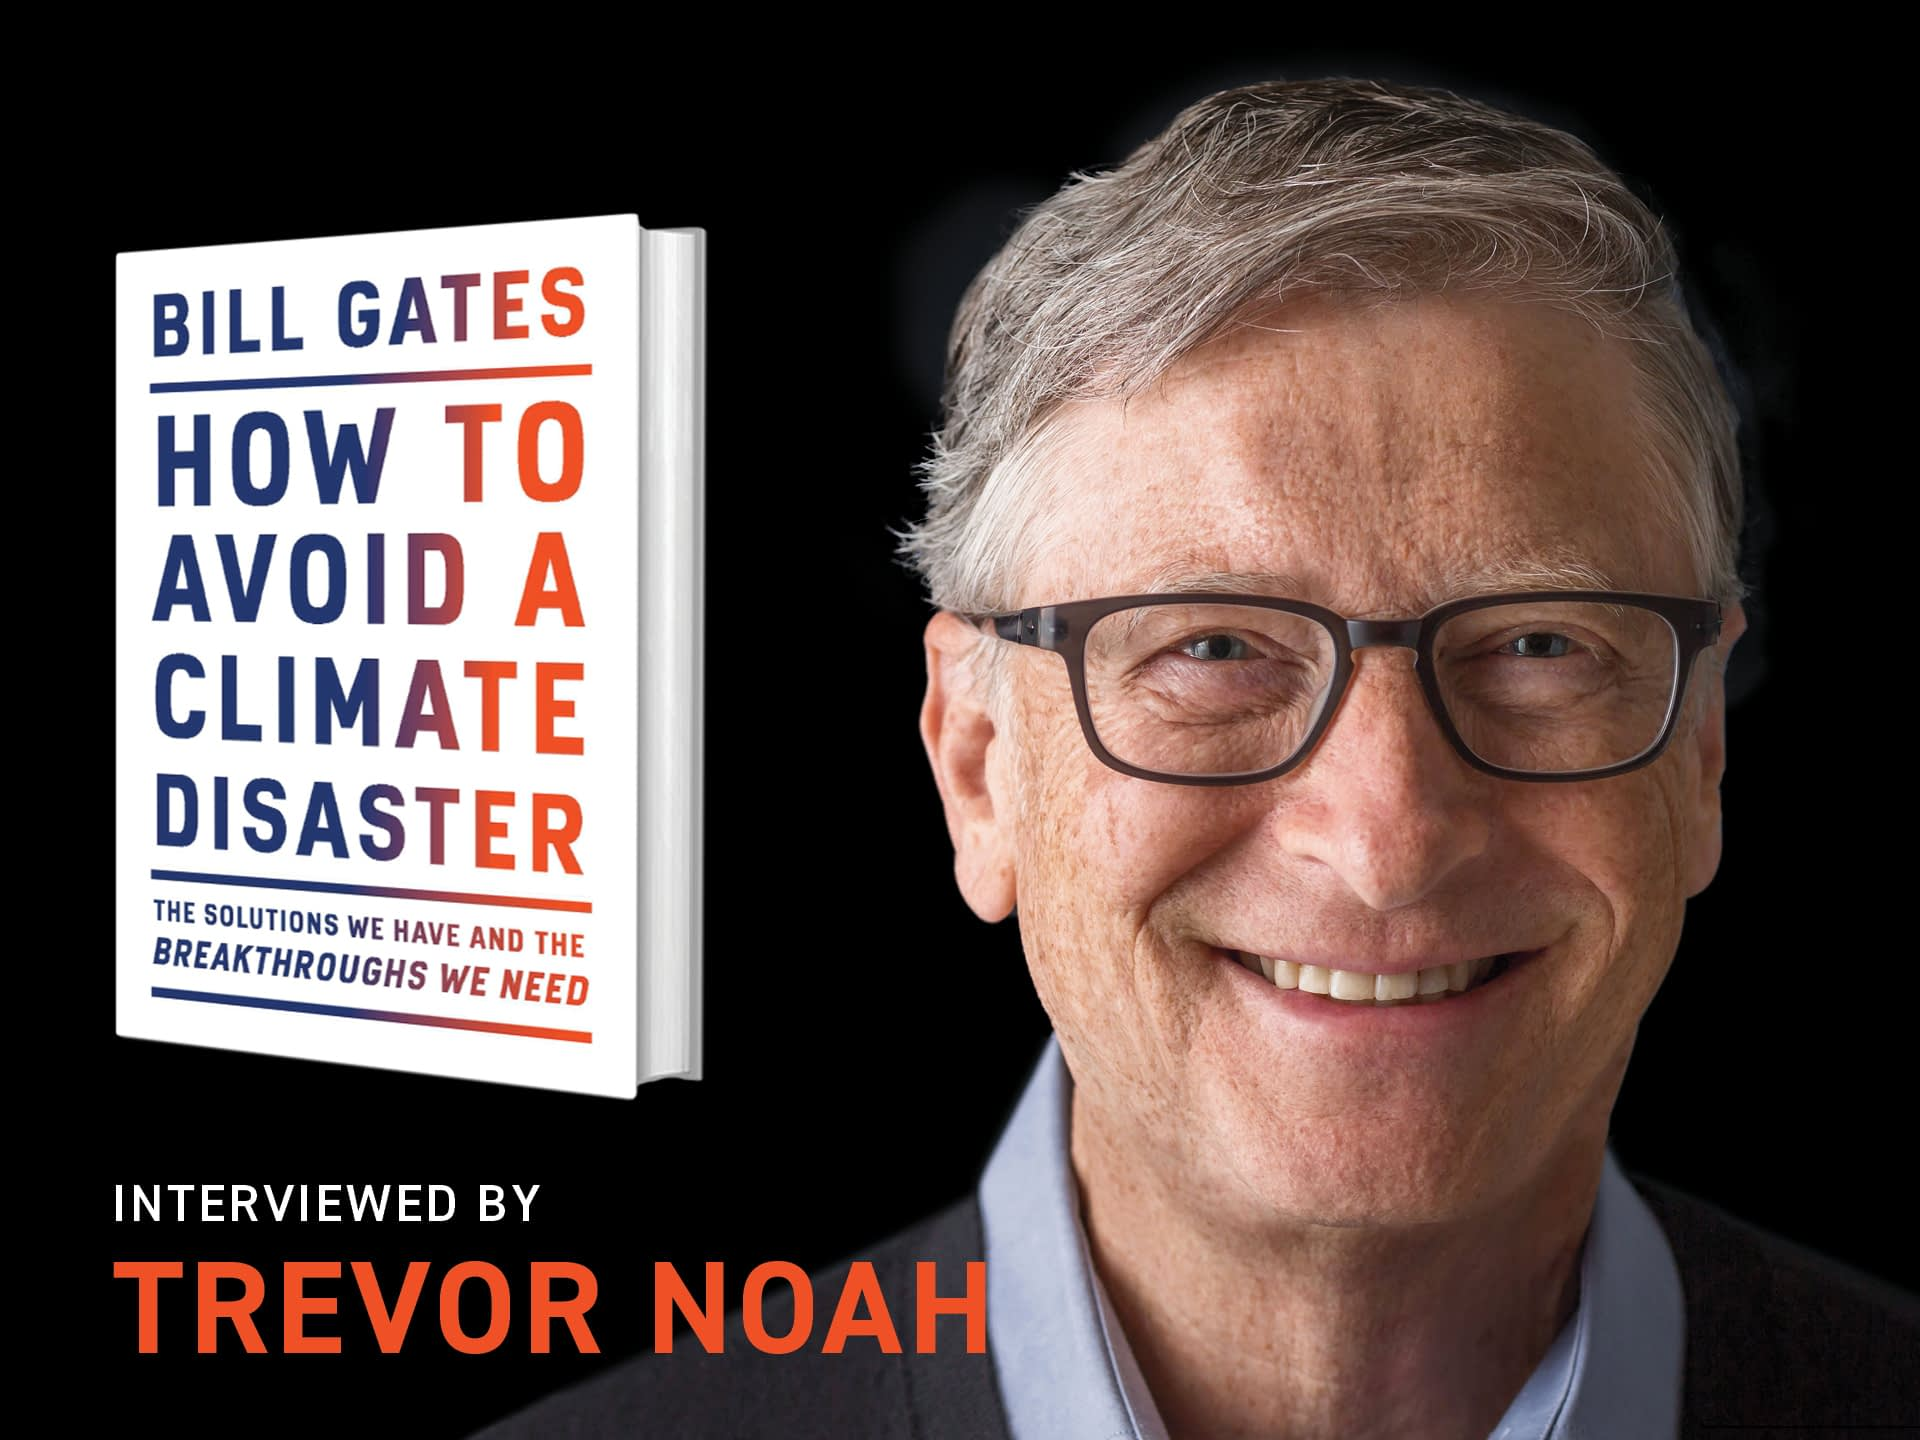 Bill Gates - Bill Gates - How to Avoid a Climate Disaster